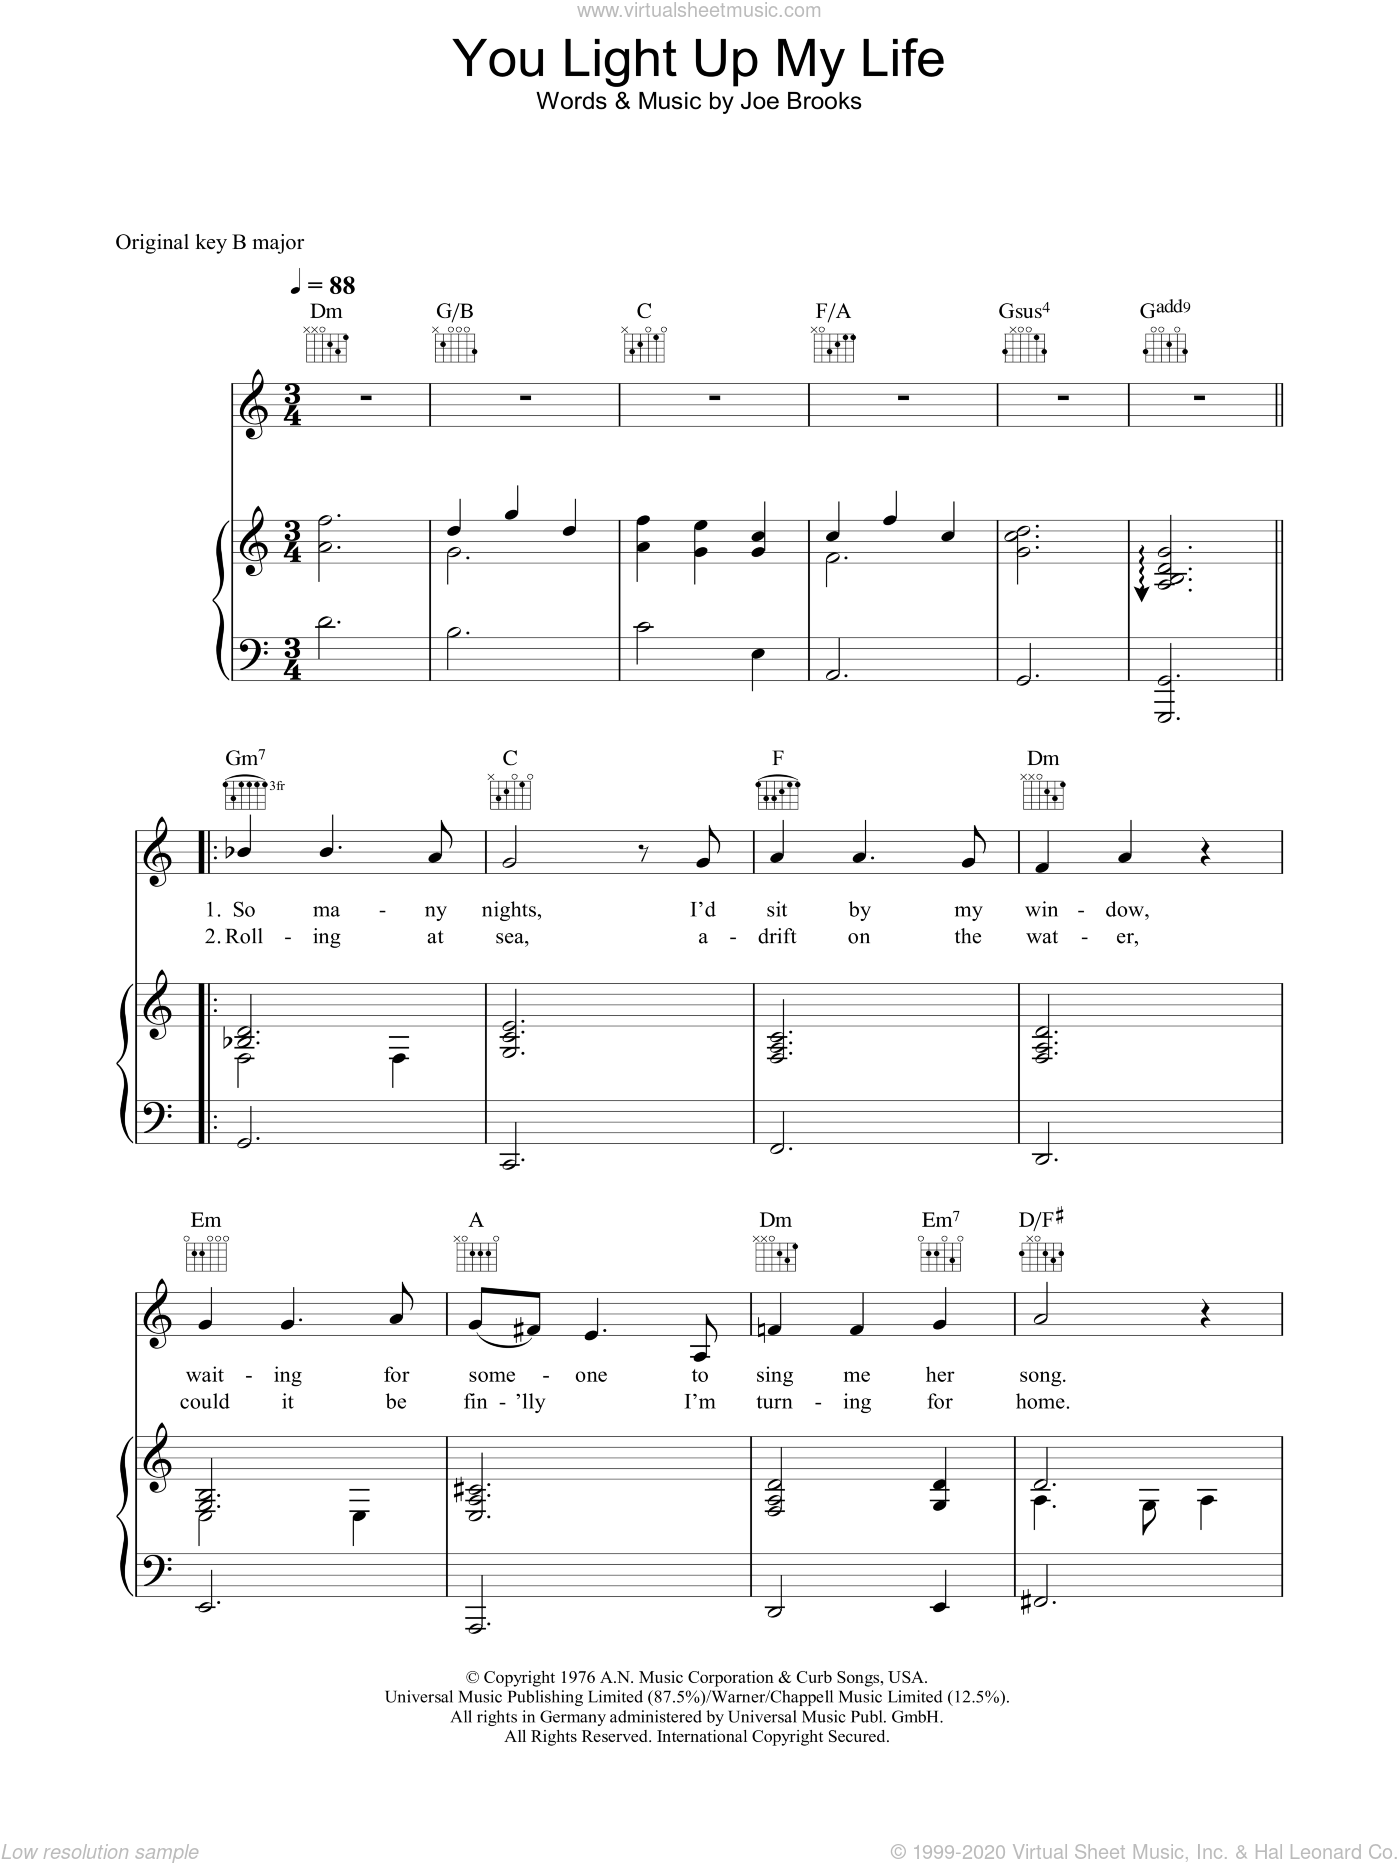 You Light Up My Life sheet music for voice, piano or guitar by Westlife and Joseph Brooks, intermediate skill level